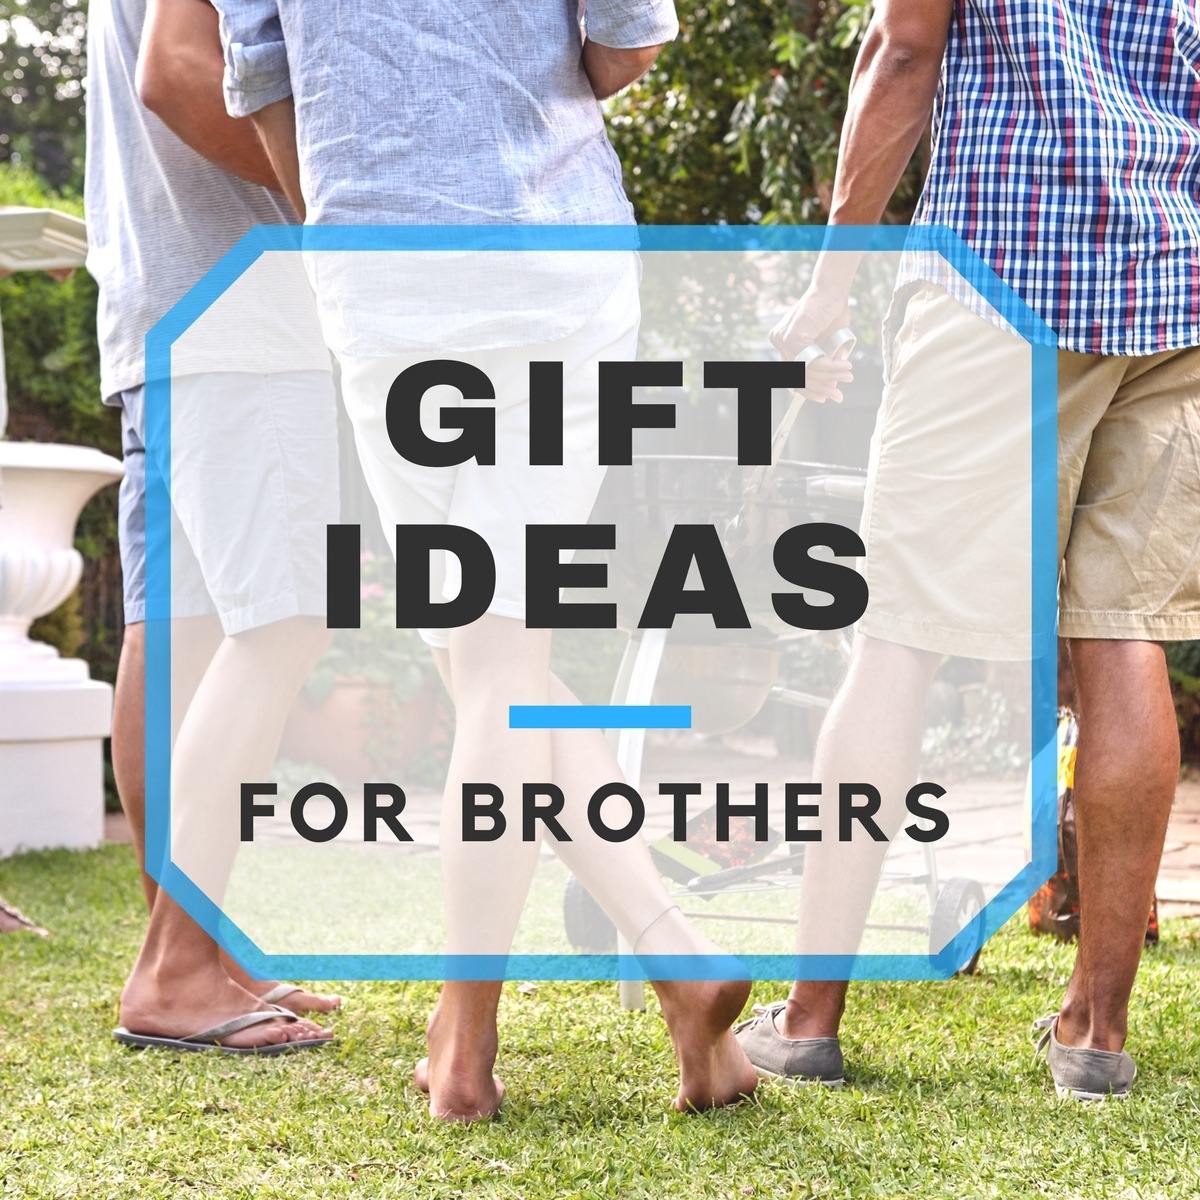 30 gift ideas for brothers geeky foodie classy manly funny gifts